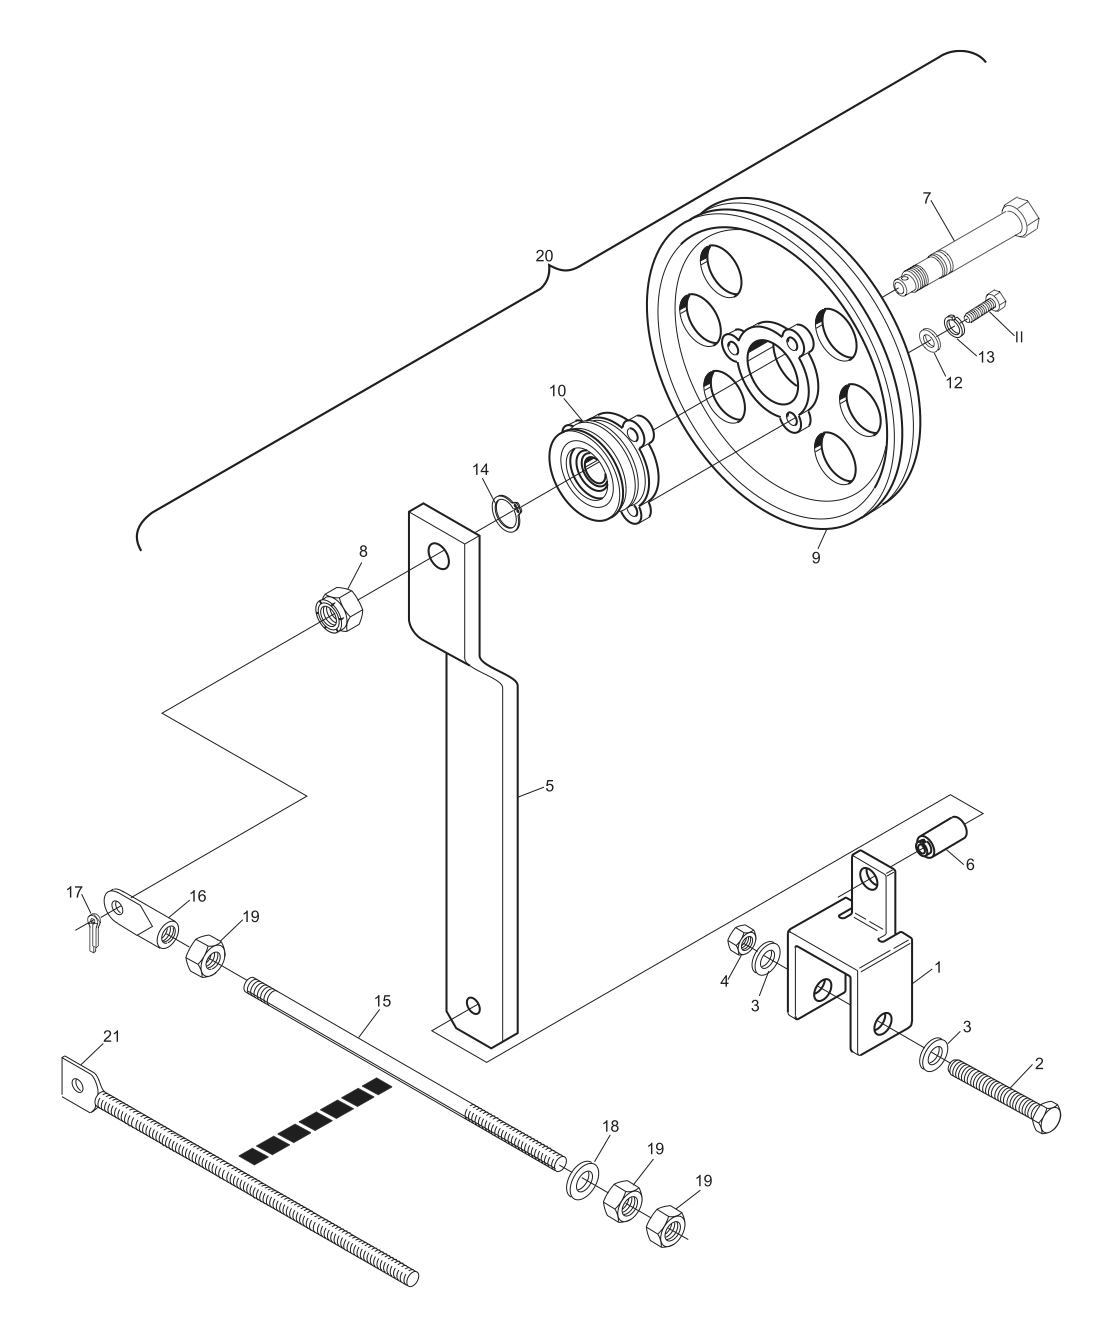 Elevator Belt Tensioner Assembly Short Pit Machines Series 43 And Above Diagram